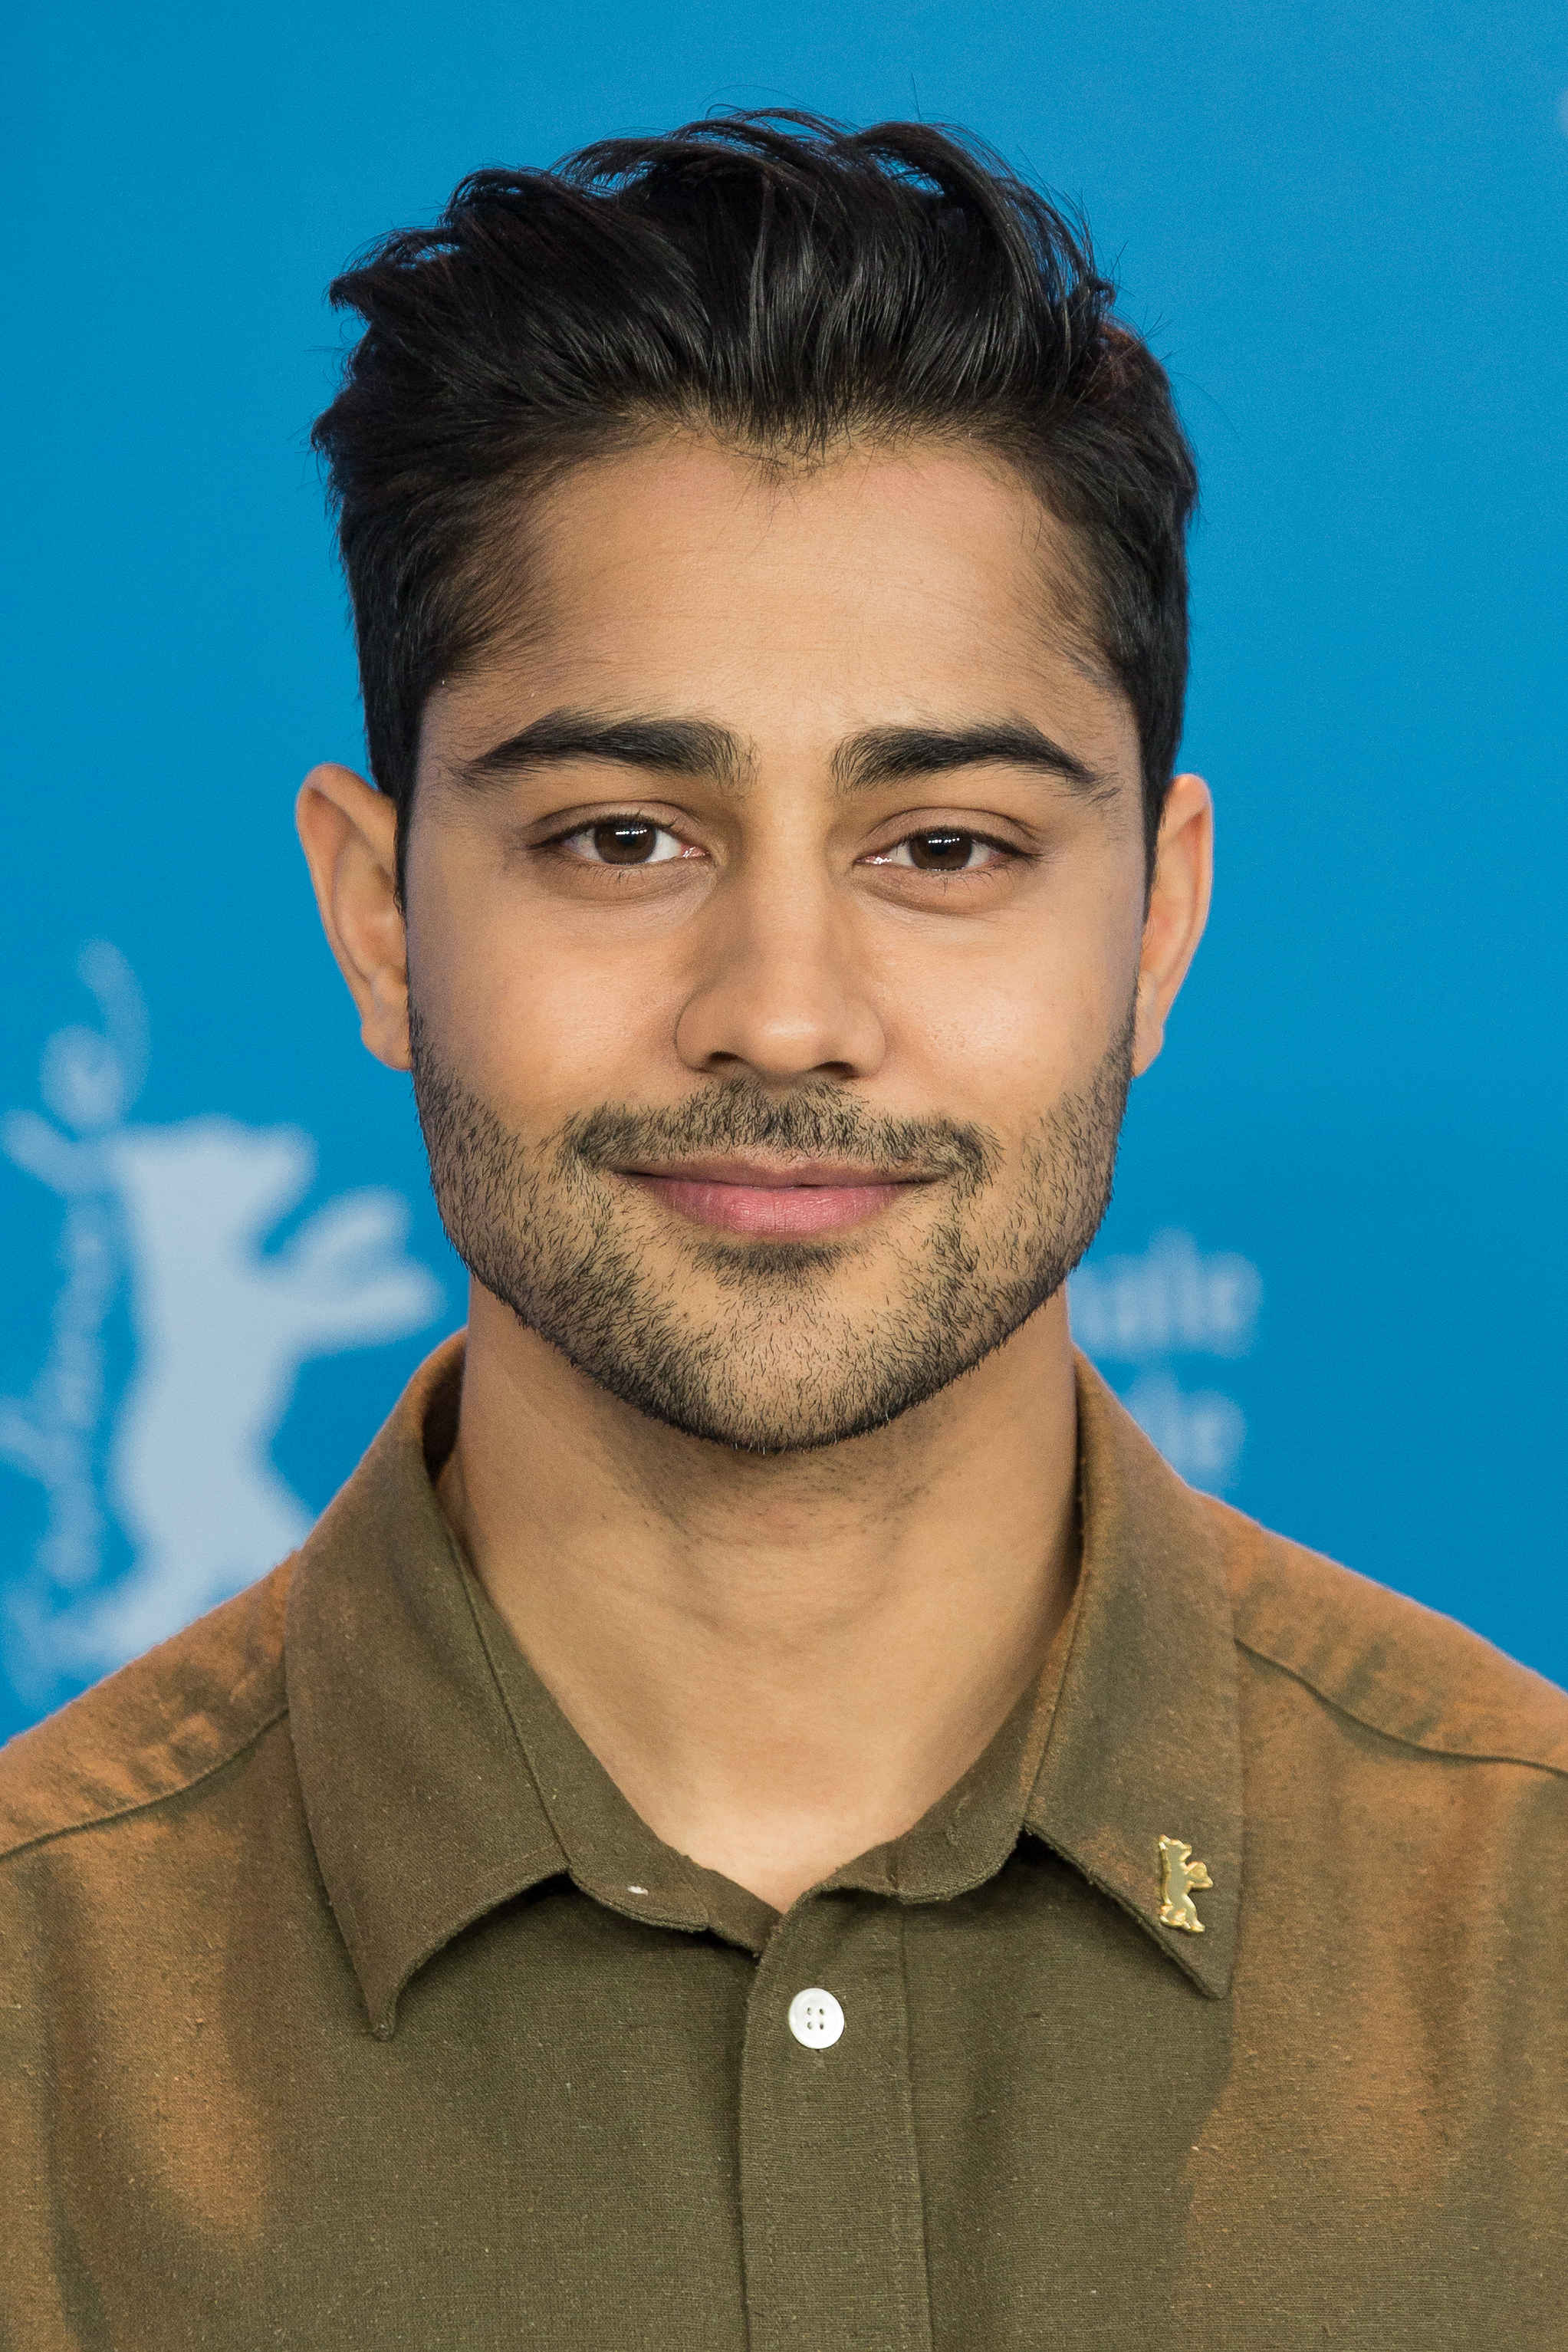 The 35-year old son of father (?) and mother(?) Manish Dayal in 2018 photo. Manish Dayal earned a  million dollar salary - leaving the net worth at 2 million in 2018